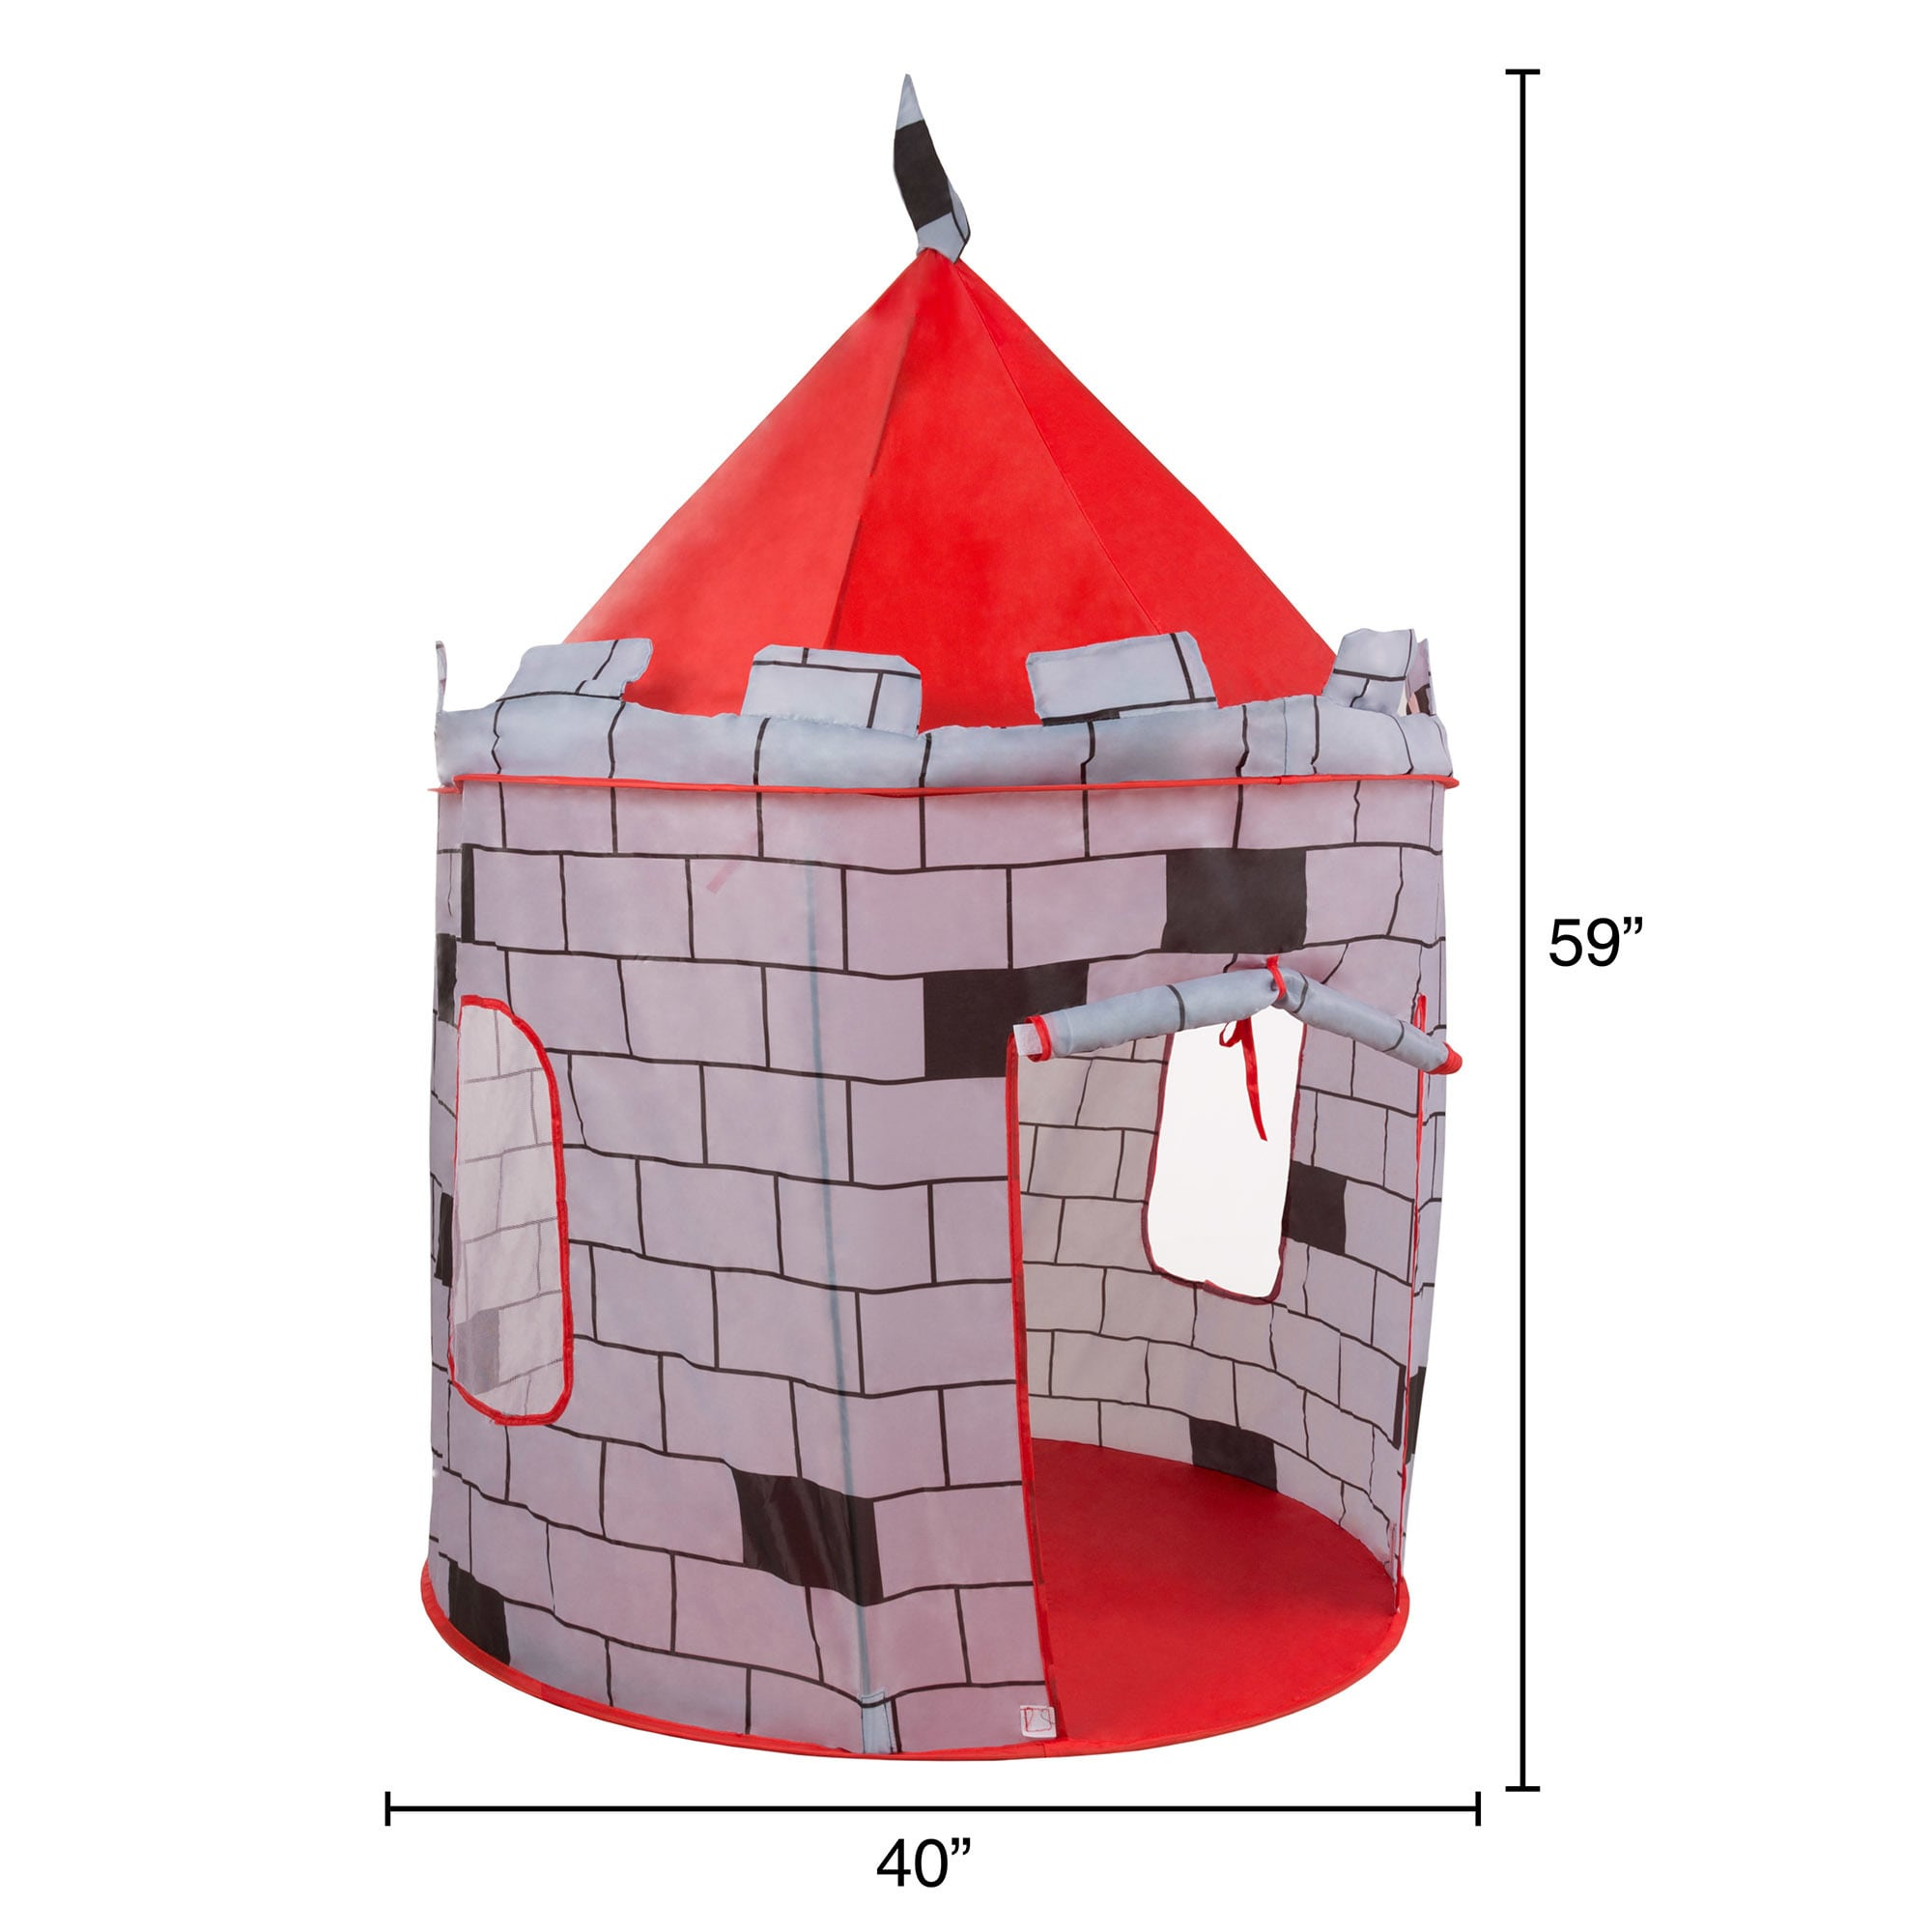 Shop Kids Play Tent Knight Castle- Pop Up for Indoor/Outdoor Red and Gray Playroom Toy- Foldable with Carrying Bag by Hey! Play! - Free Shipping On Orders ...  sc 1 st  Overstock.com & Shop Kids Play Tent Knight Castle- Pop Up for Indoor/Outdoor Red ...